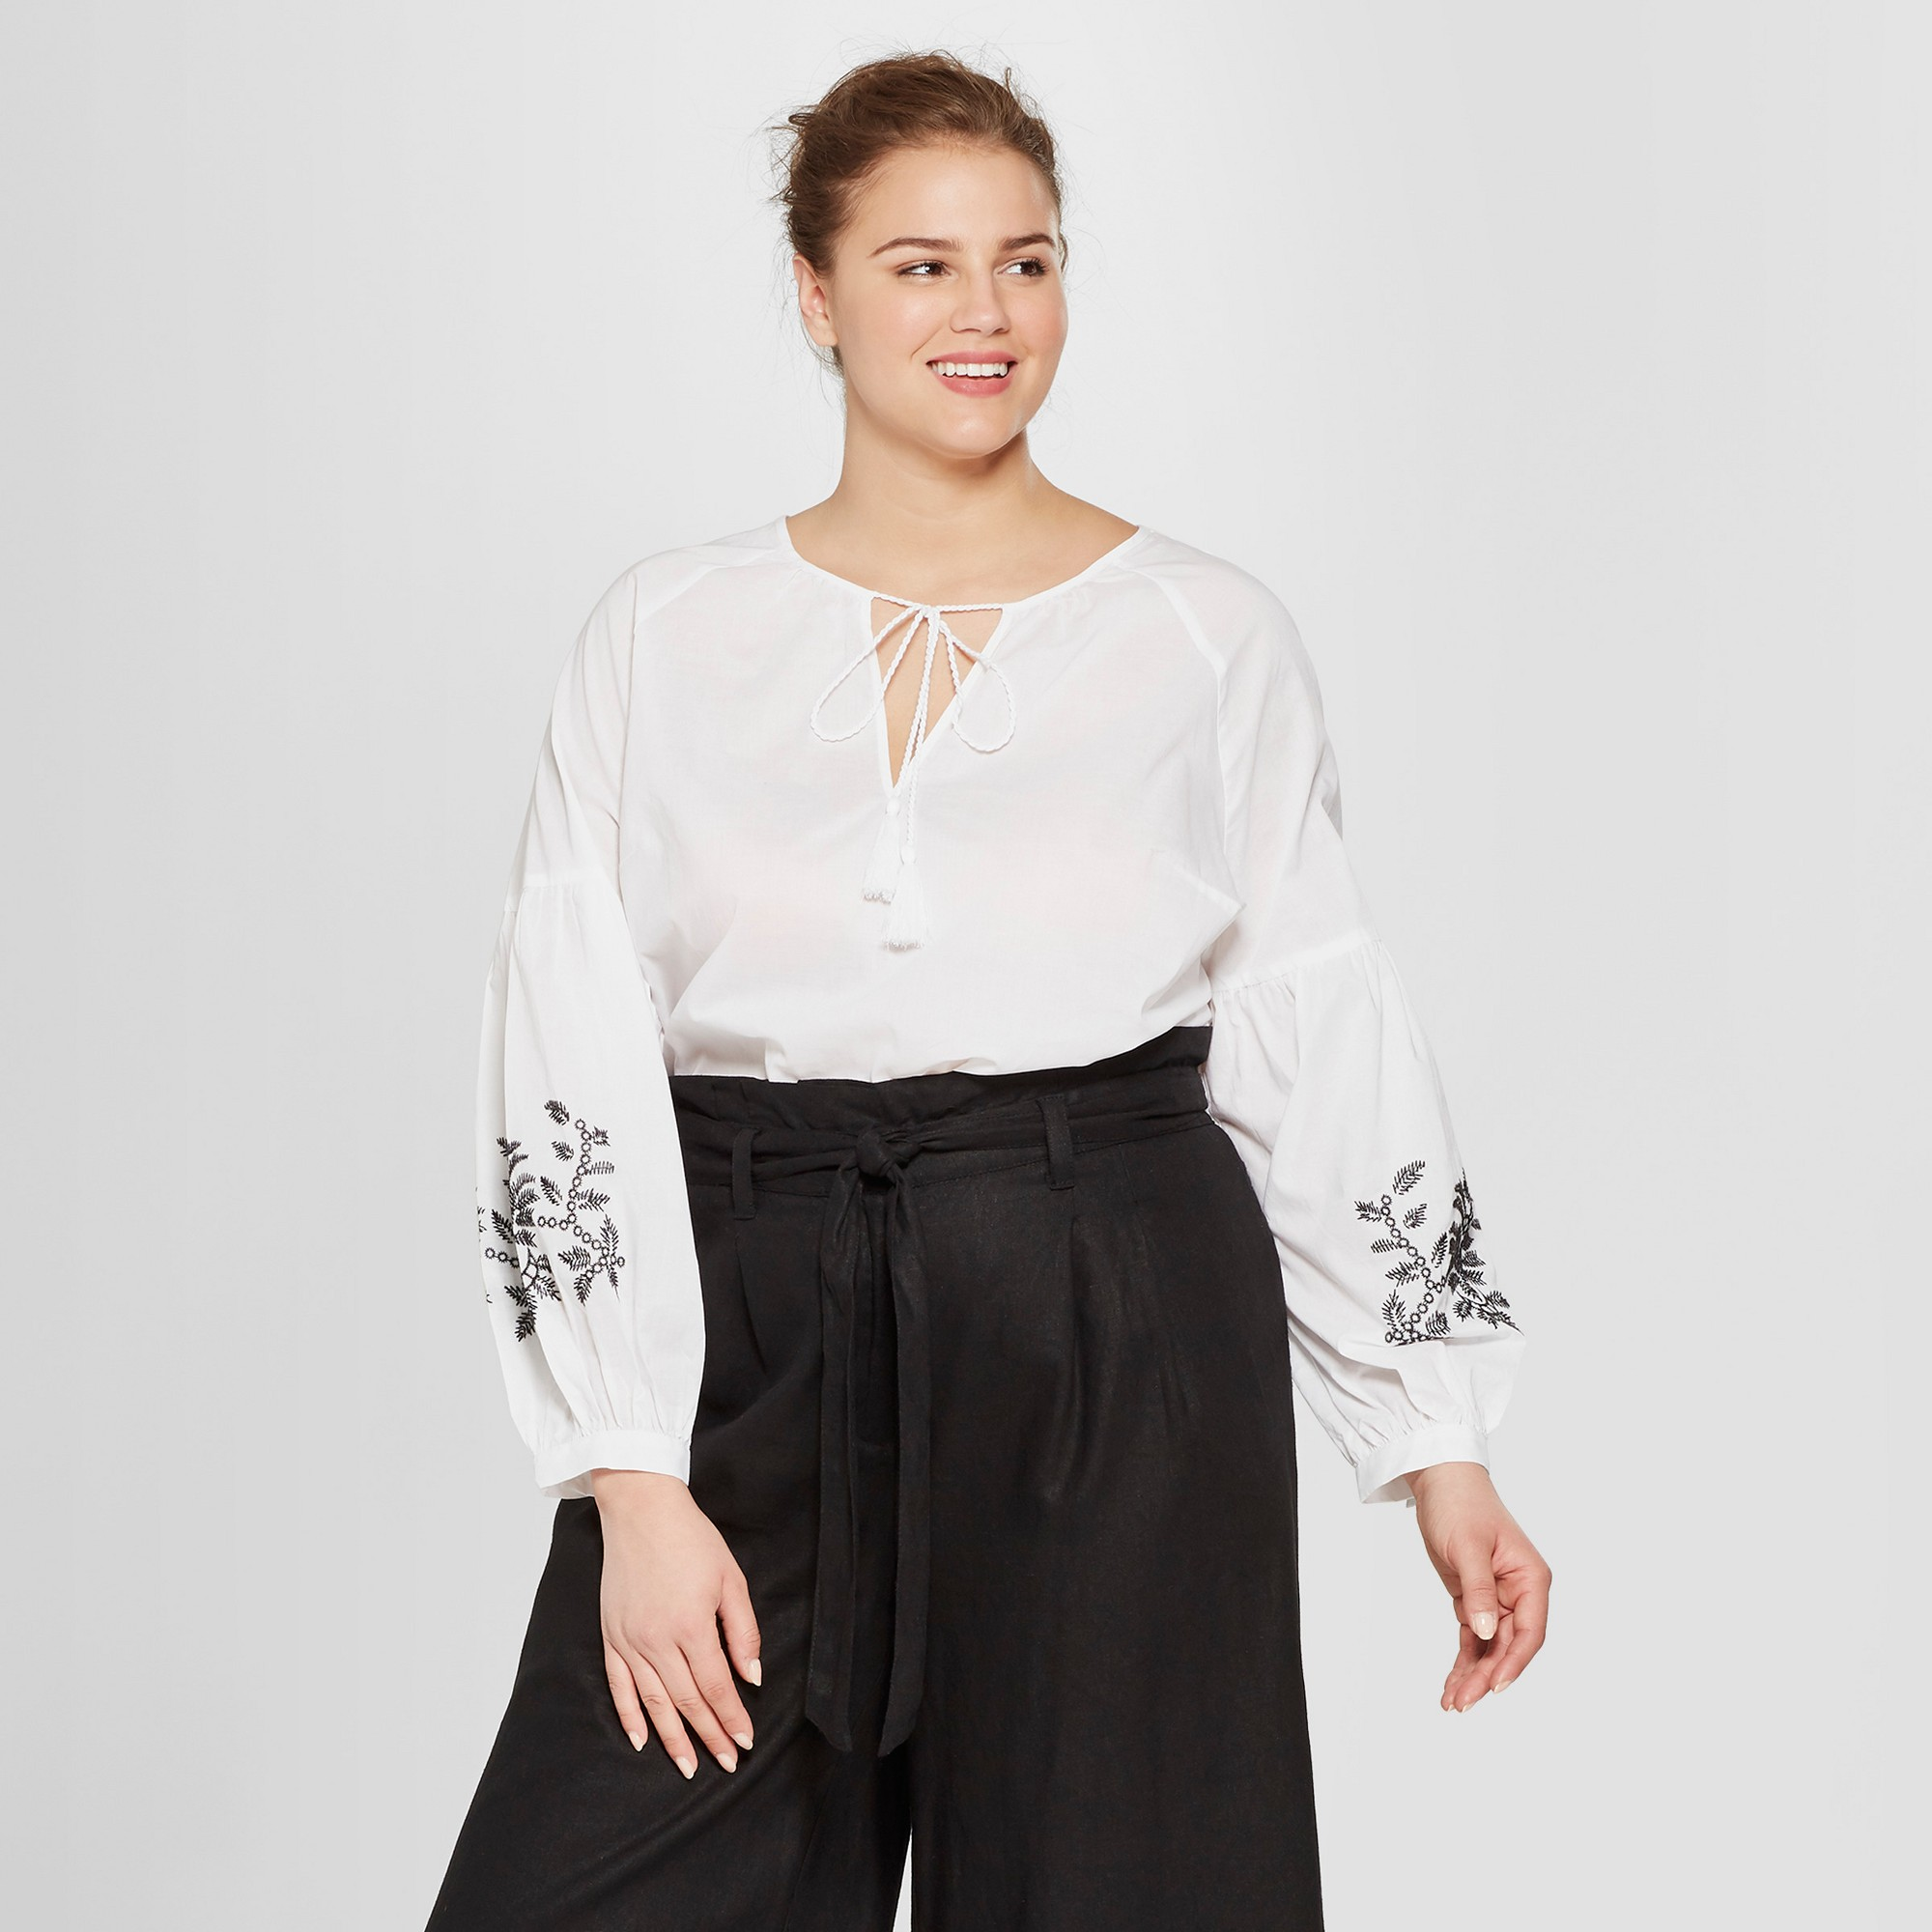 c368b1e4acc755 Women's Plus Size Long Sleeve Embroidered Blouse - Who What Wear White 4X